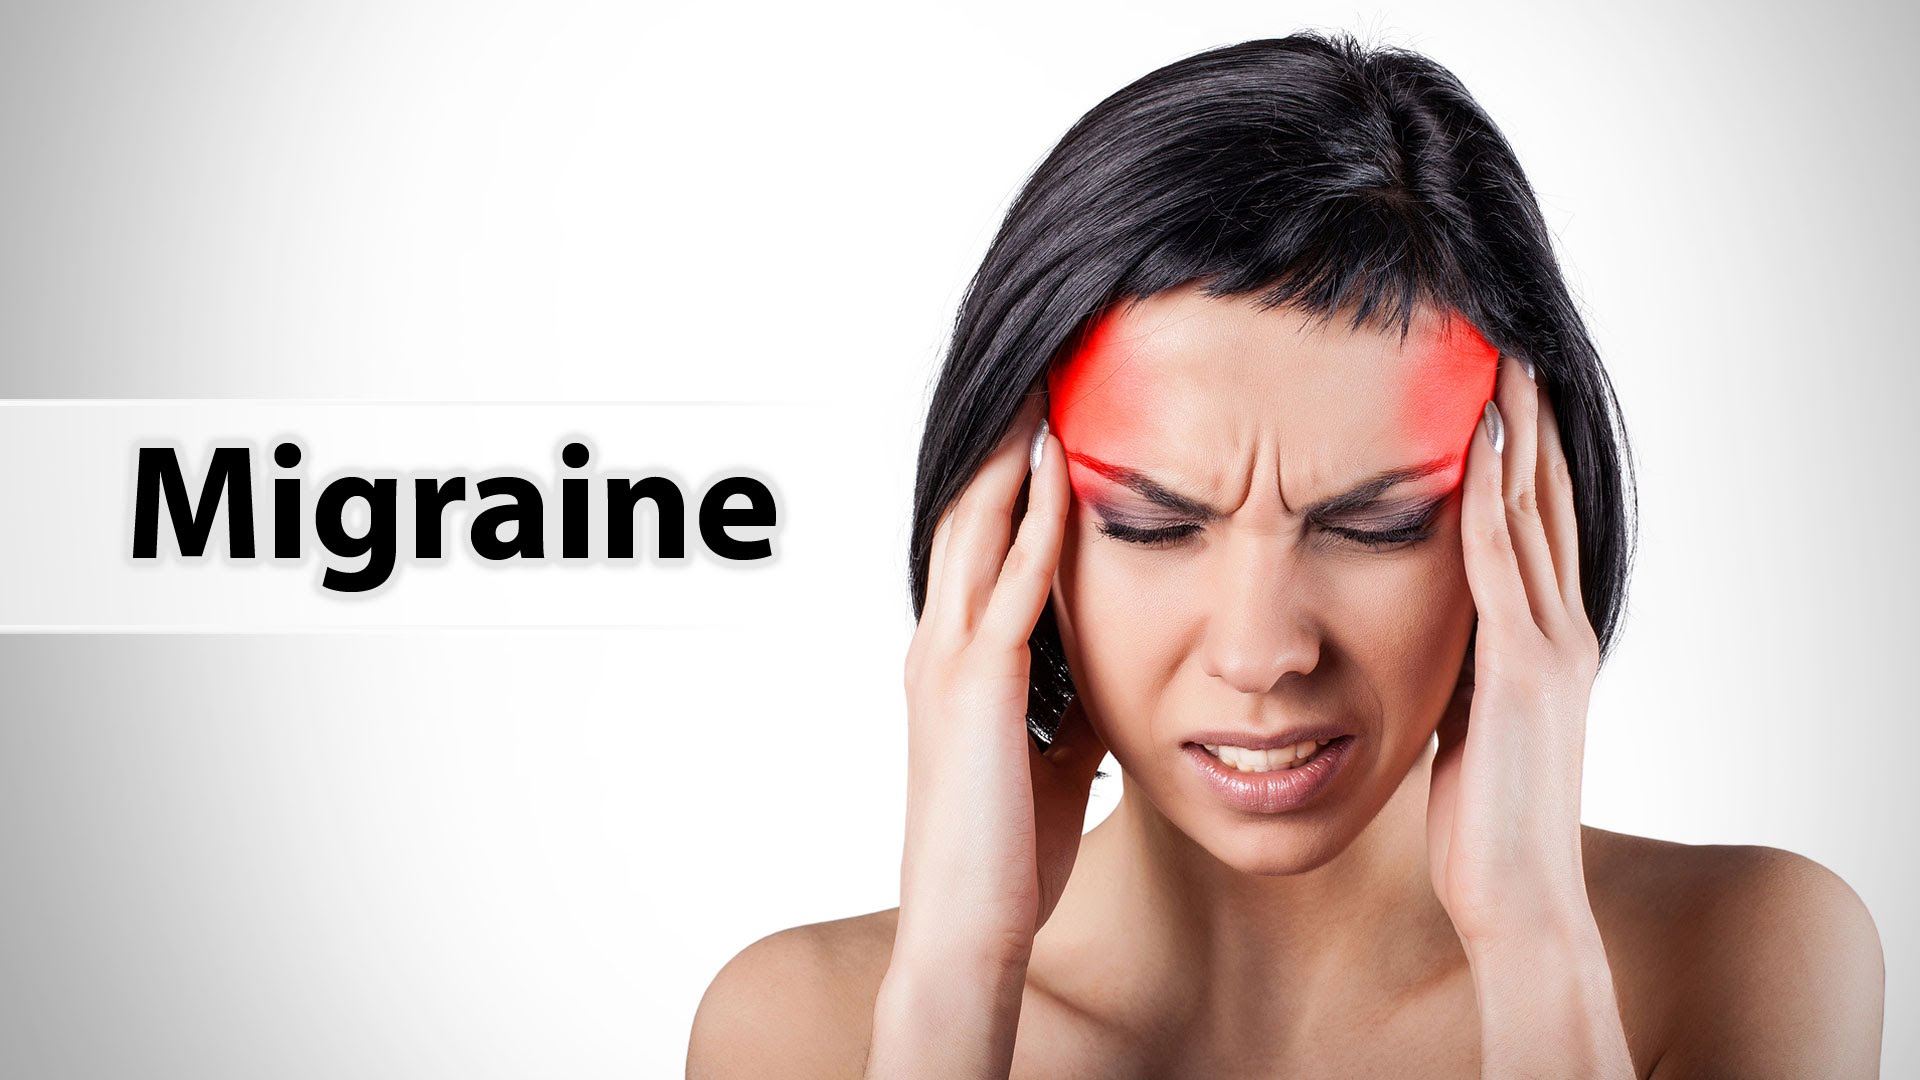 Migraine - 7 Ways You Can Deal With At Workplace